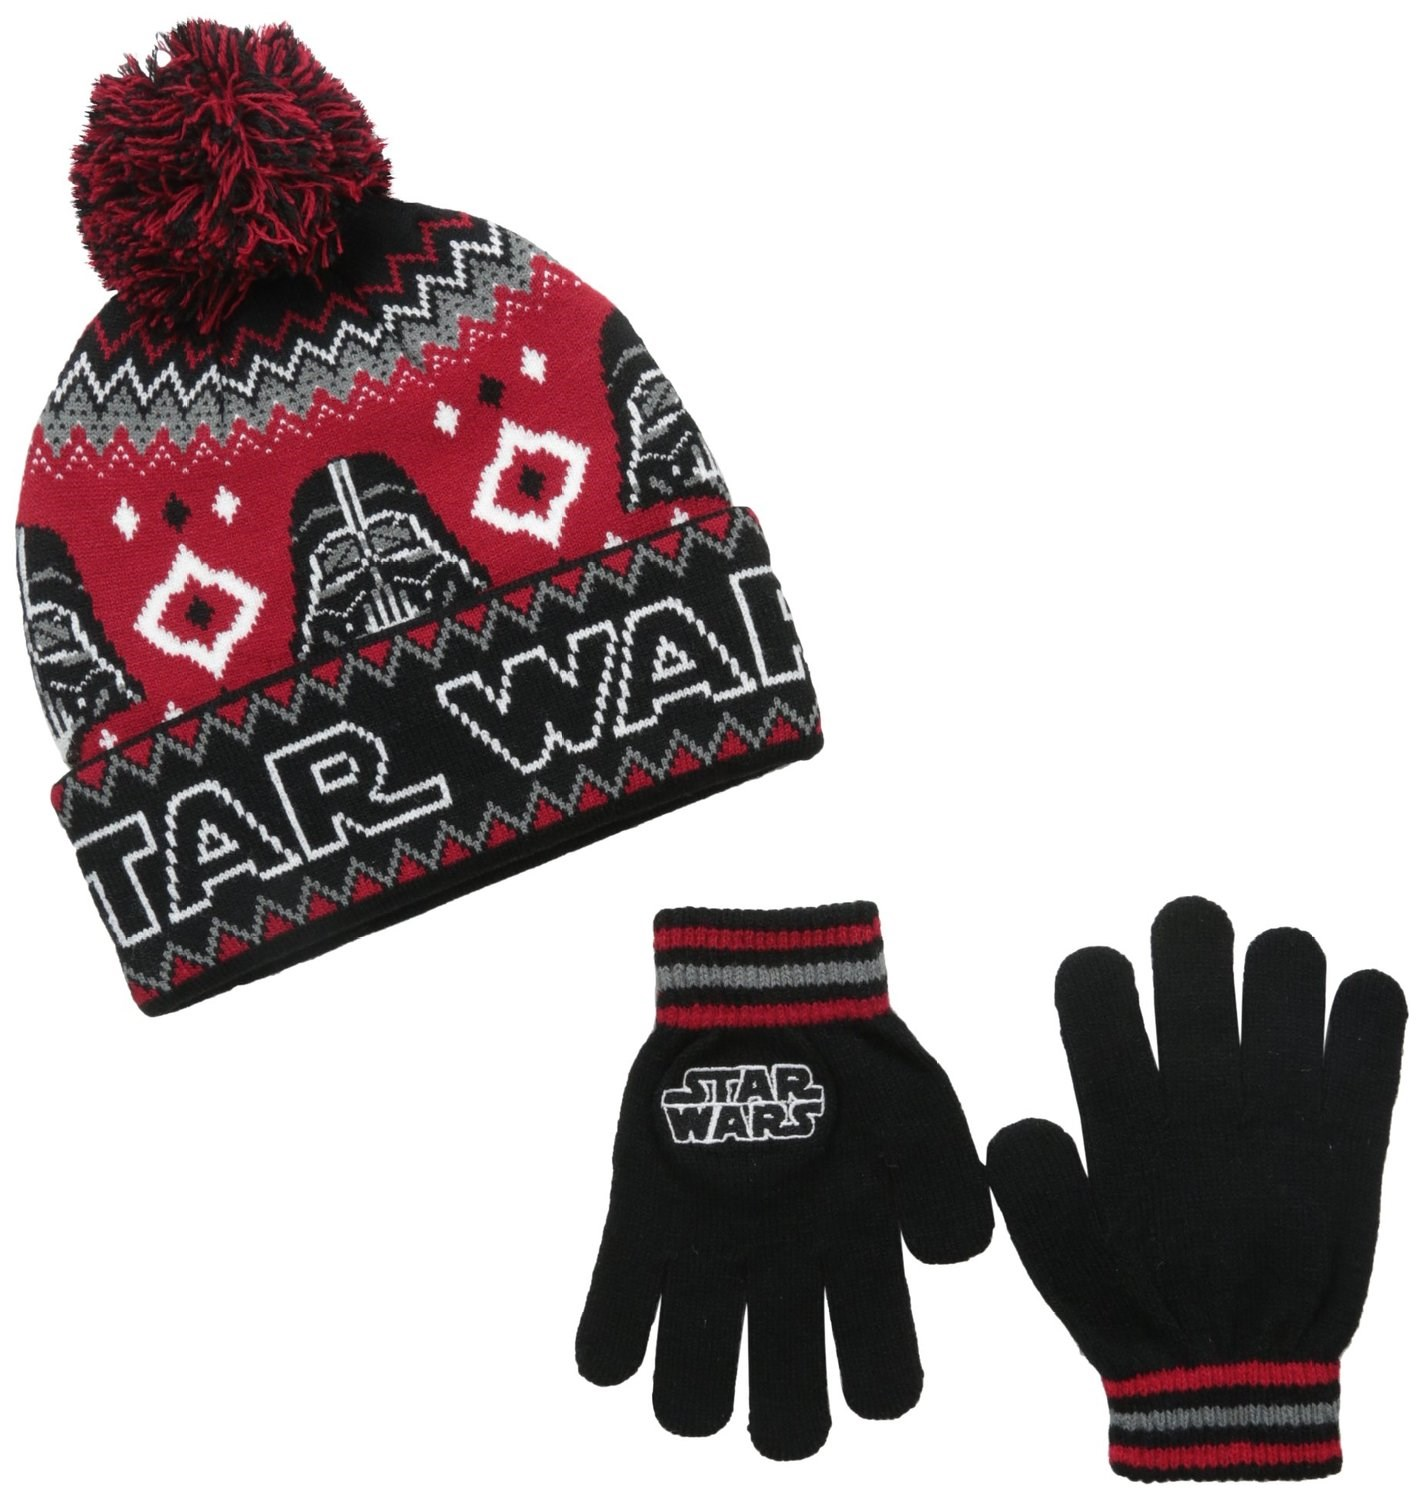 Star Wars Darth Vader Child Knit Hat & Gloves